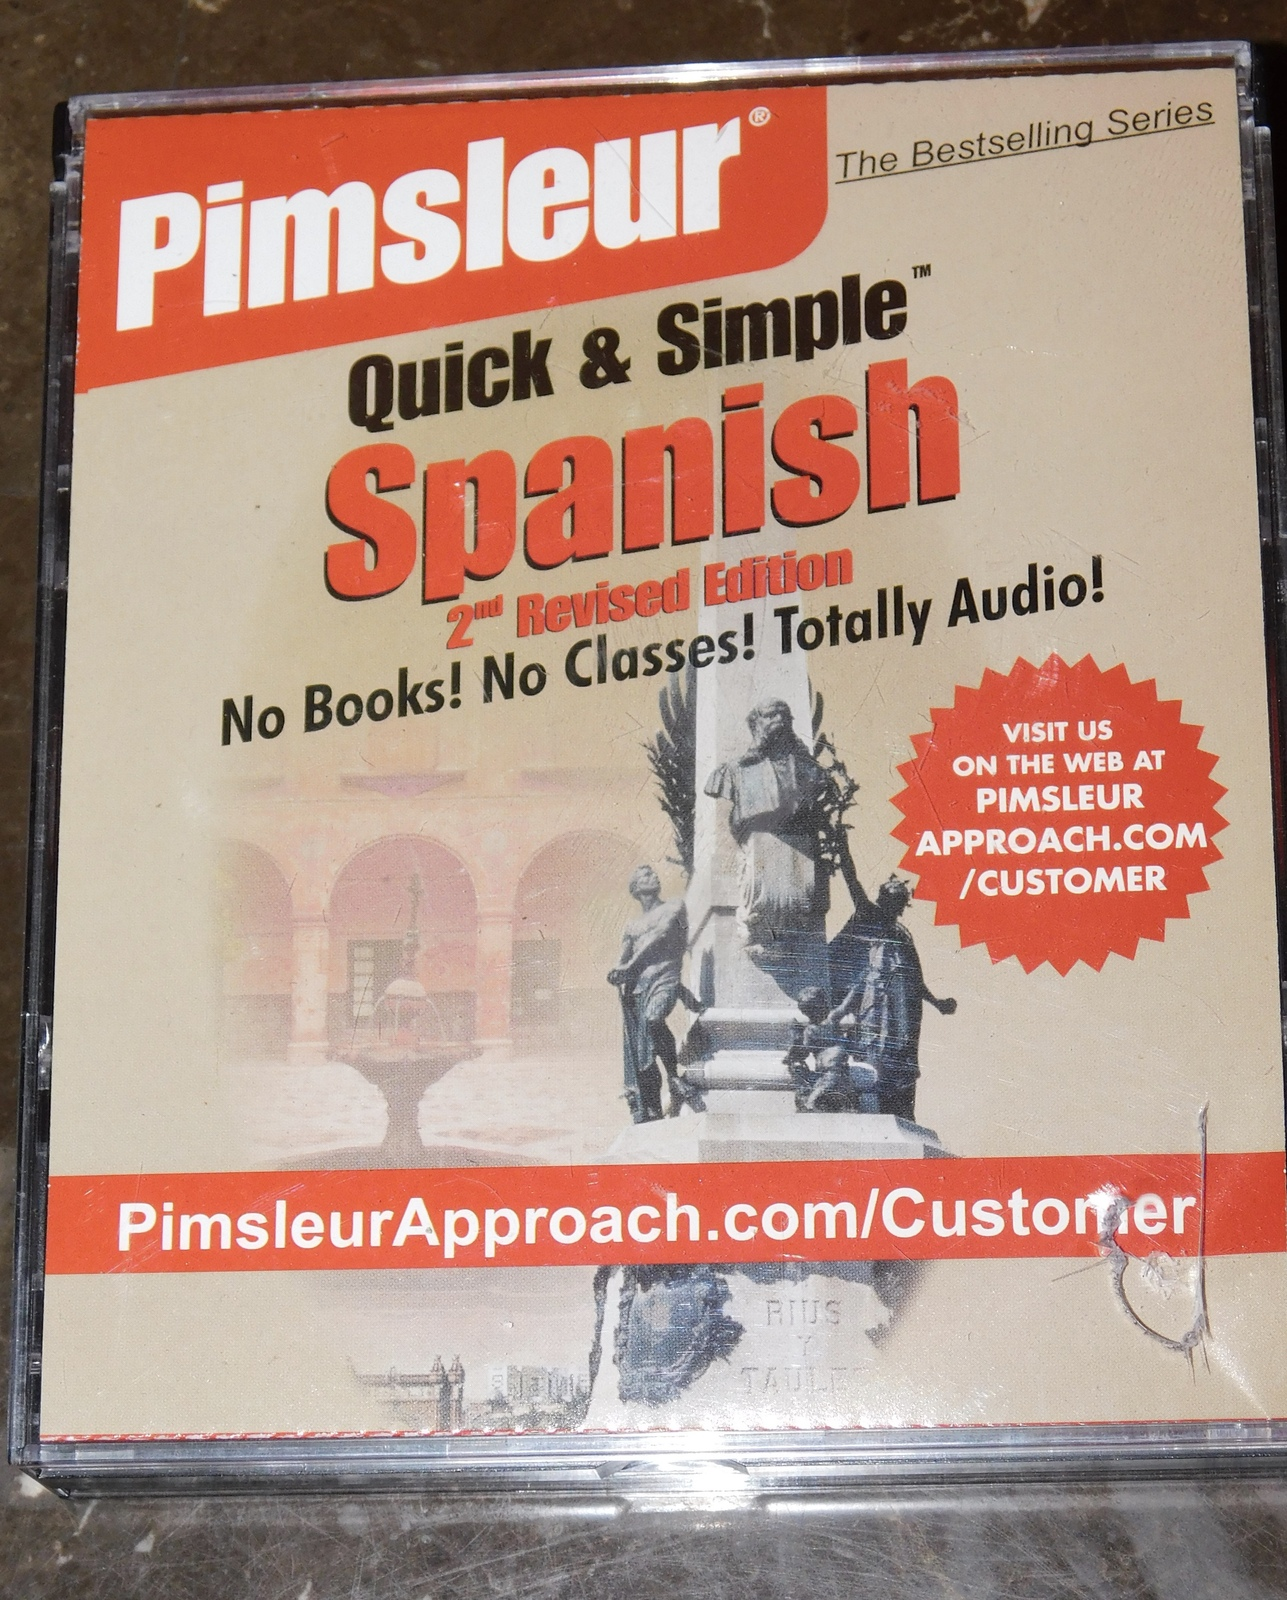 Pimsleur Quick Simple Spanish 4 CD Set 2nd Revised Edition 8